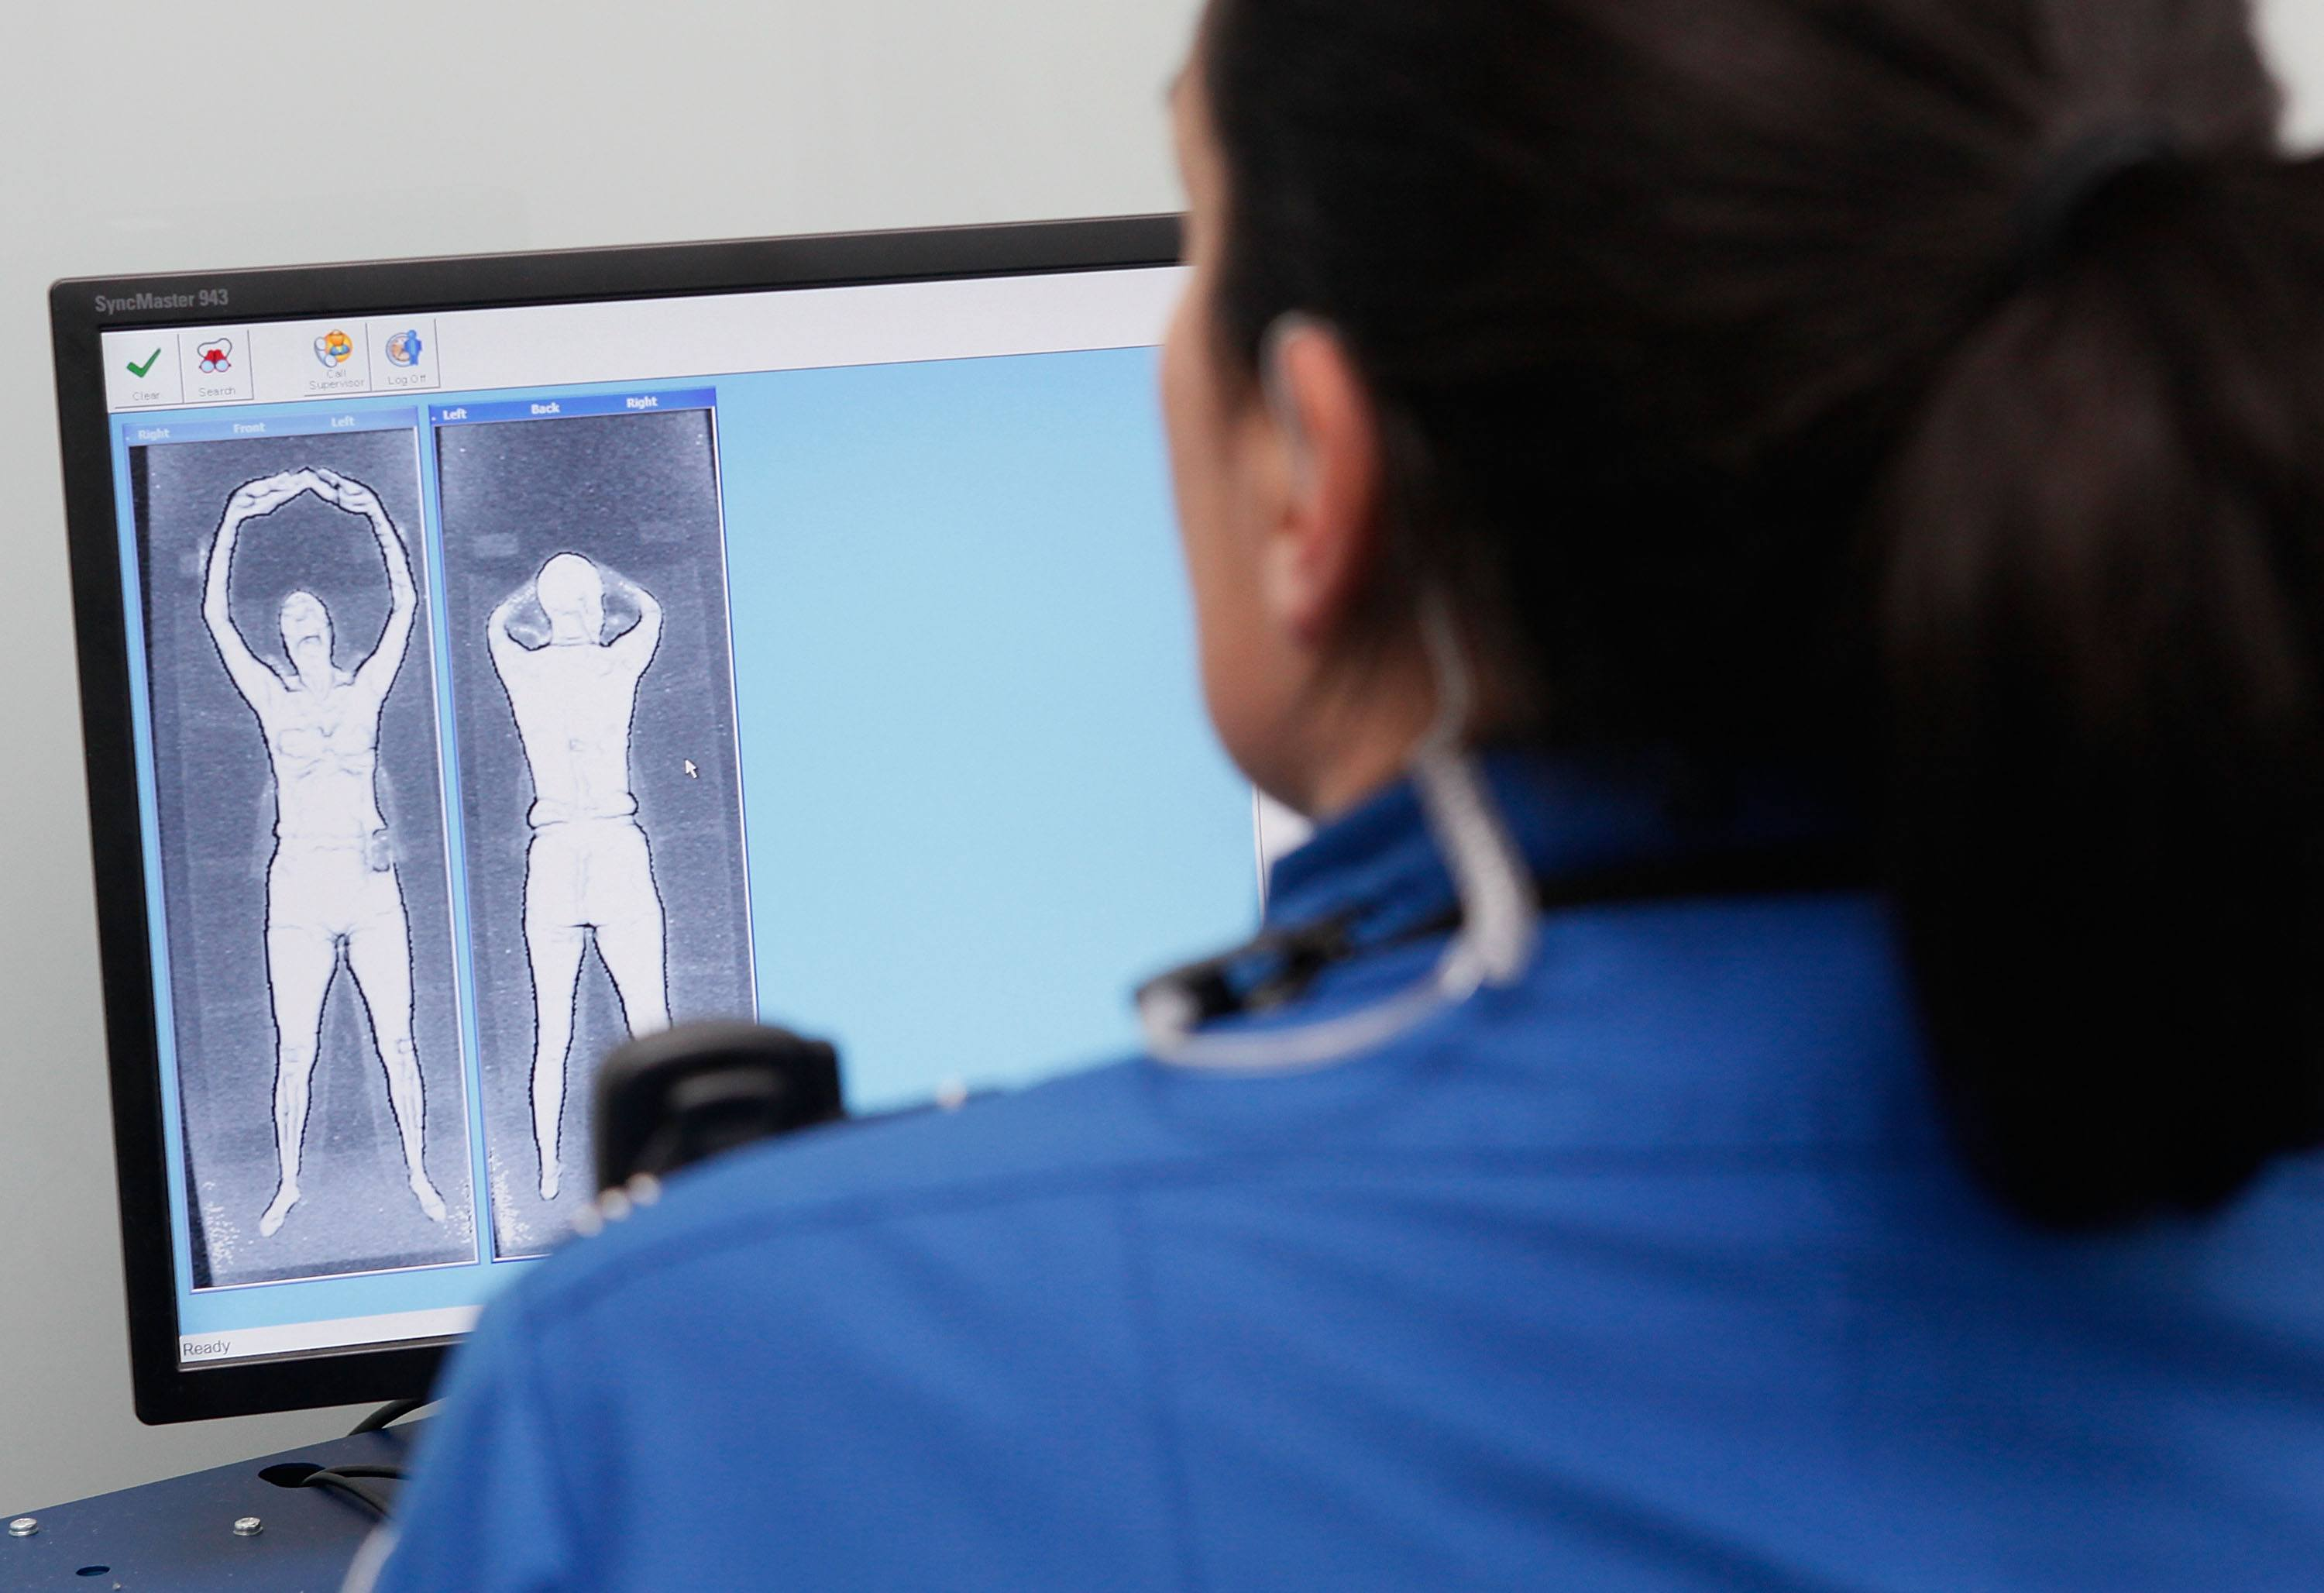 Airport body scan pictures images Baywatch's Donna D'Errico picked for 'nude' TSA body scan